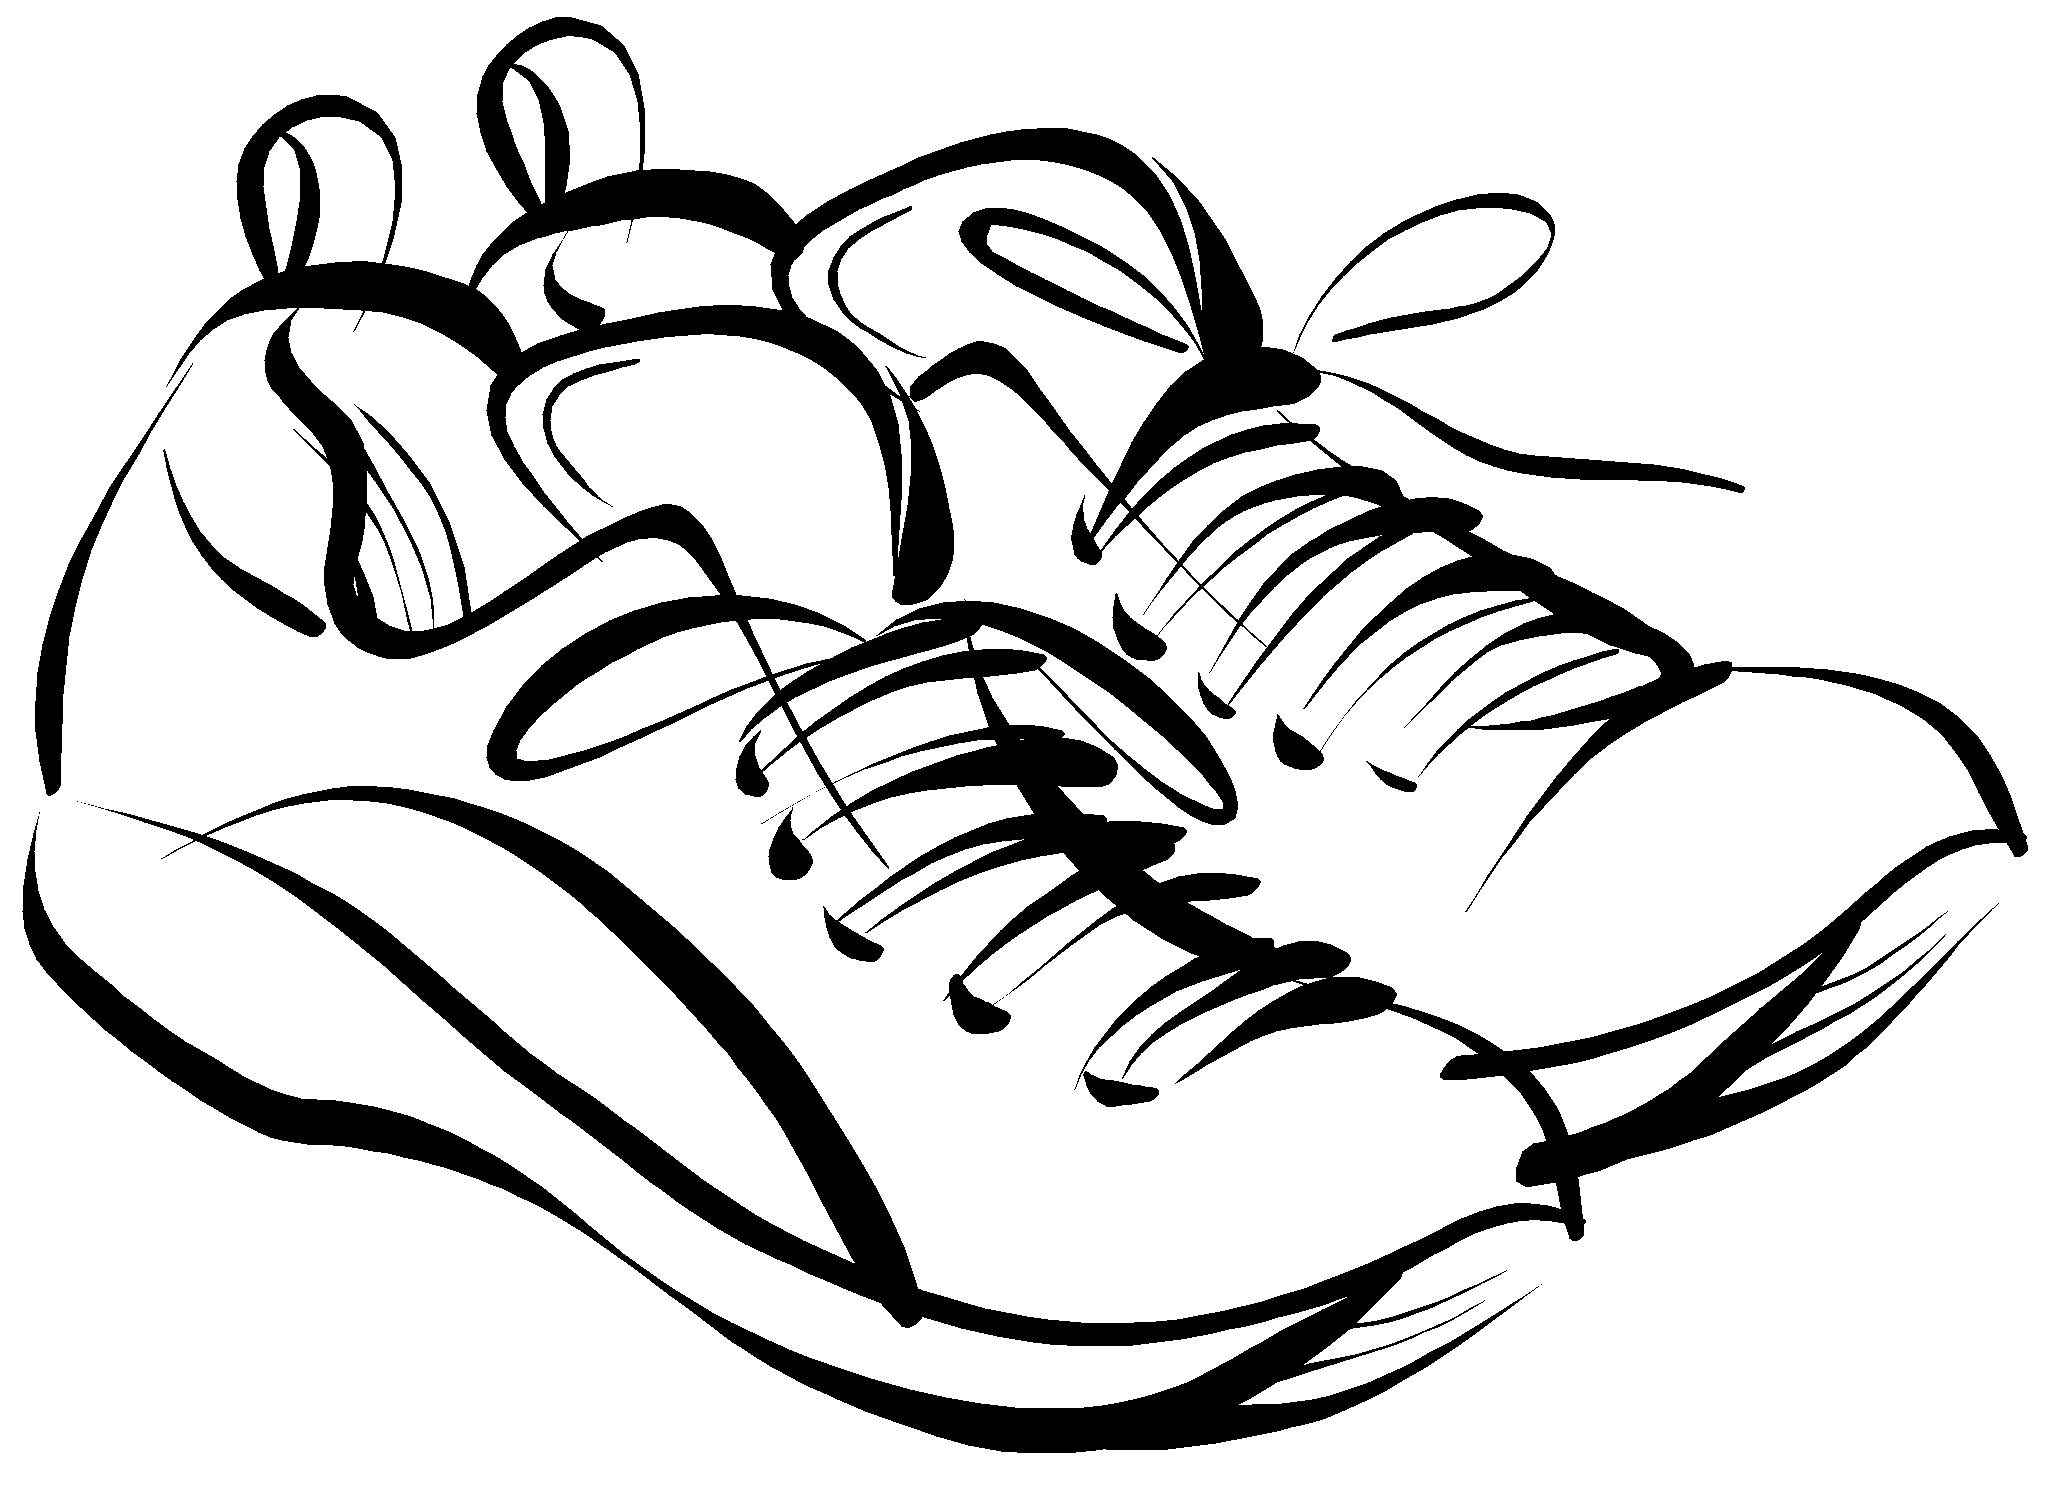 Free clipart running shoes. Drawing panda images i